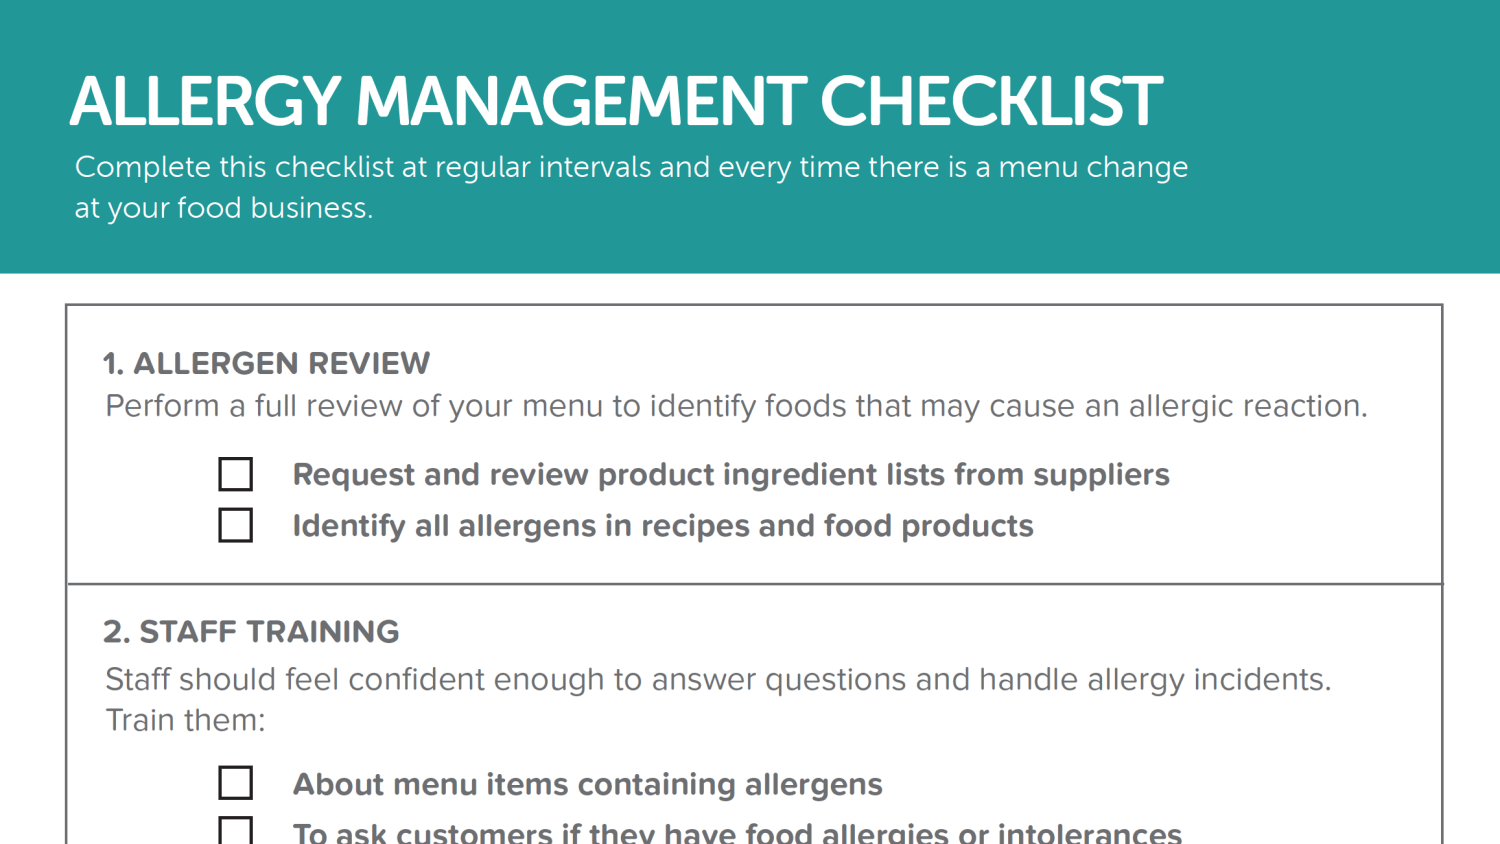 Allergy Management Checklist